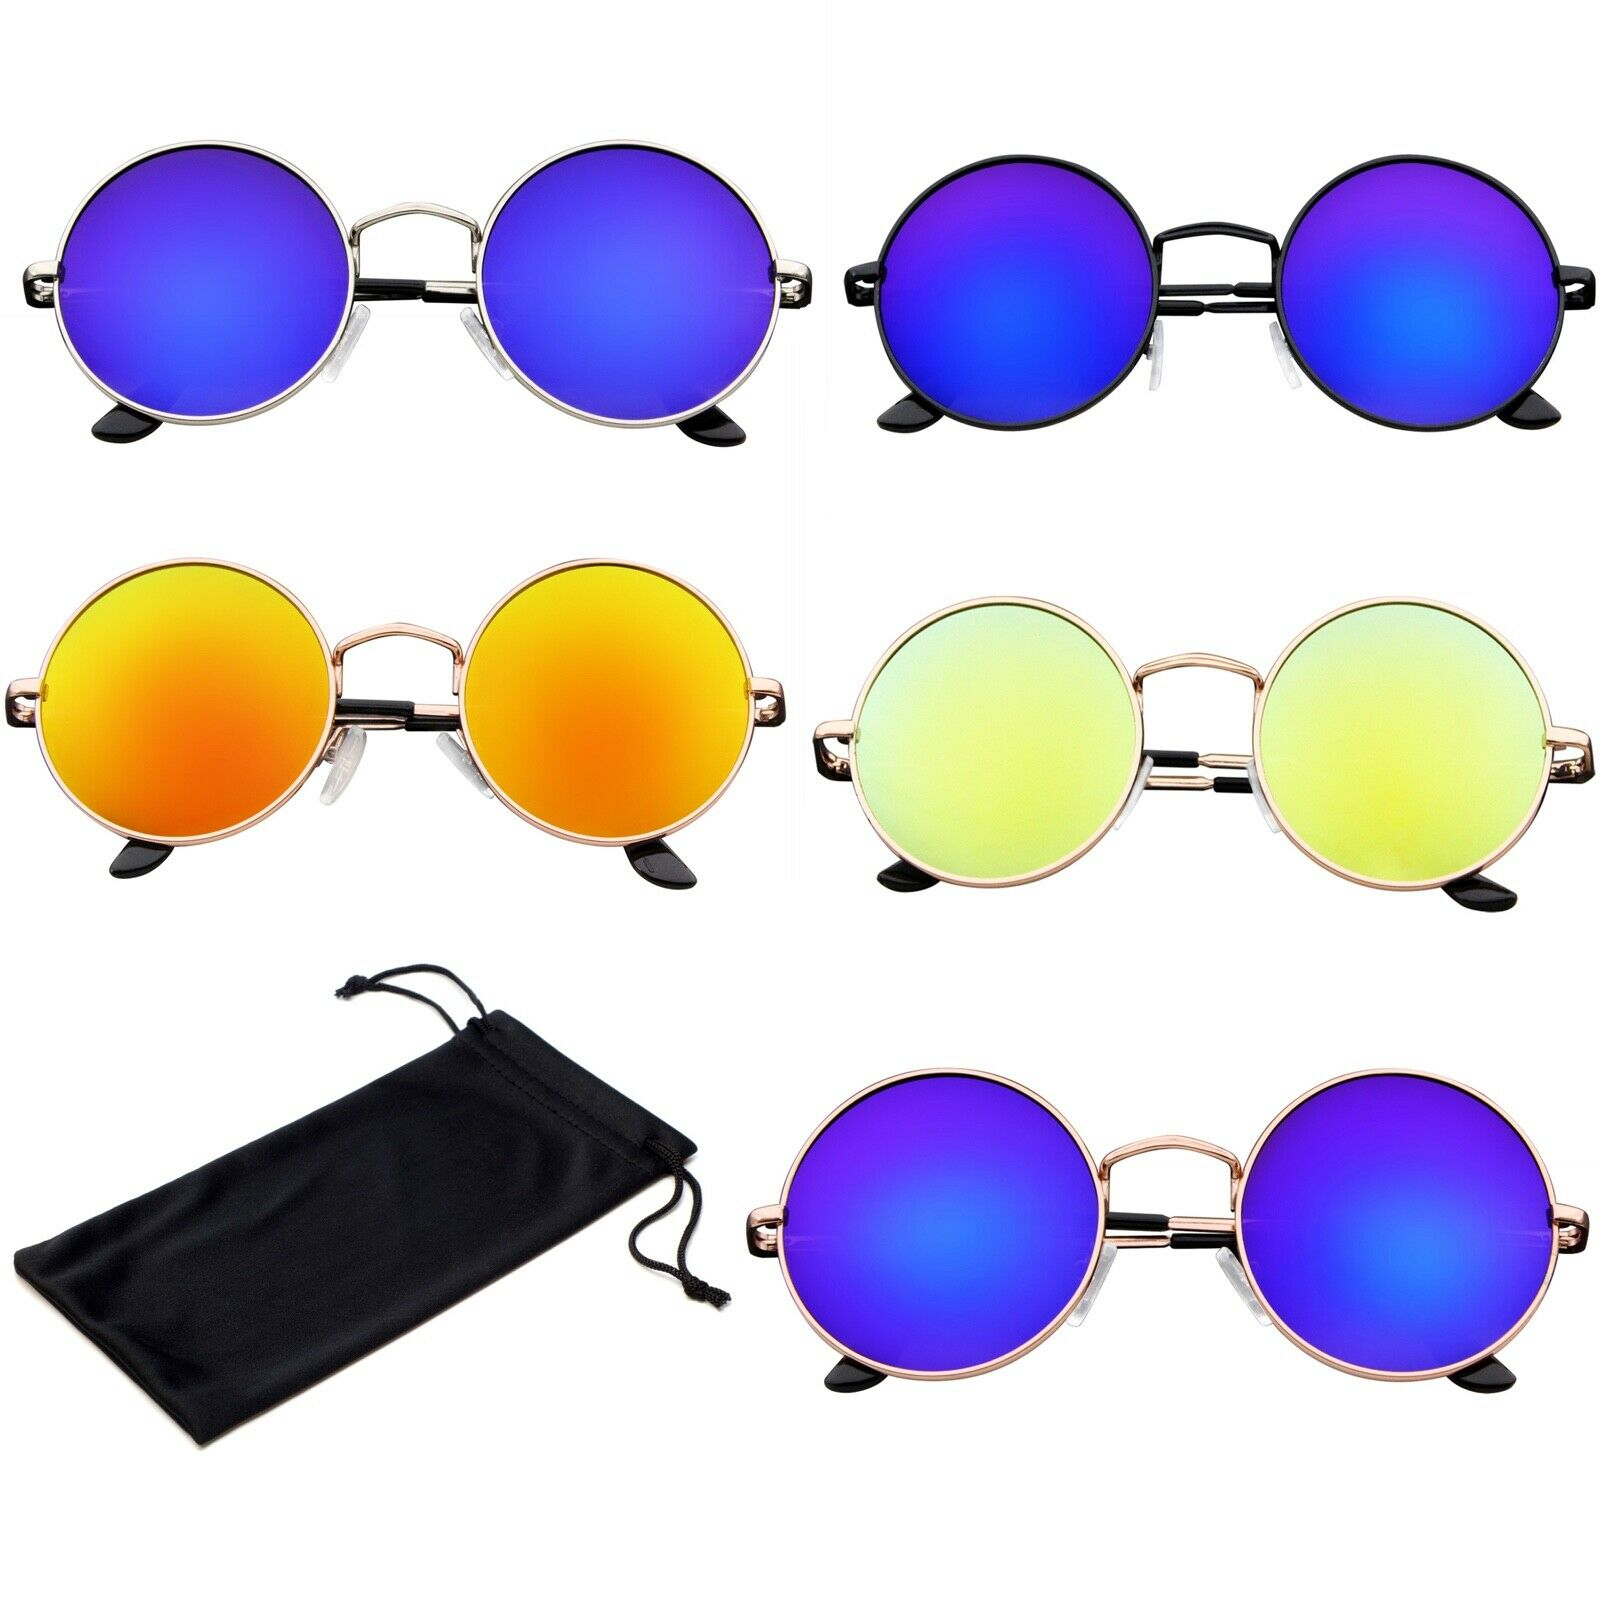 Vintage Retro Round Sun Glasses Hippie Boho Sunglasses